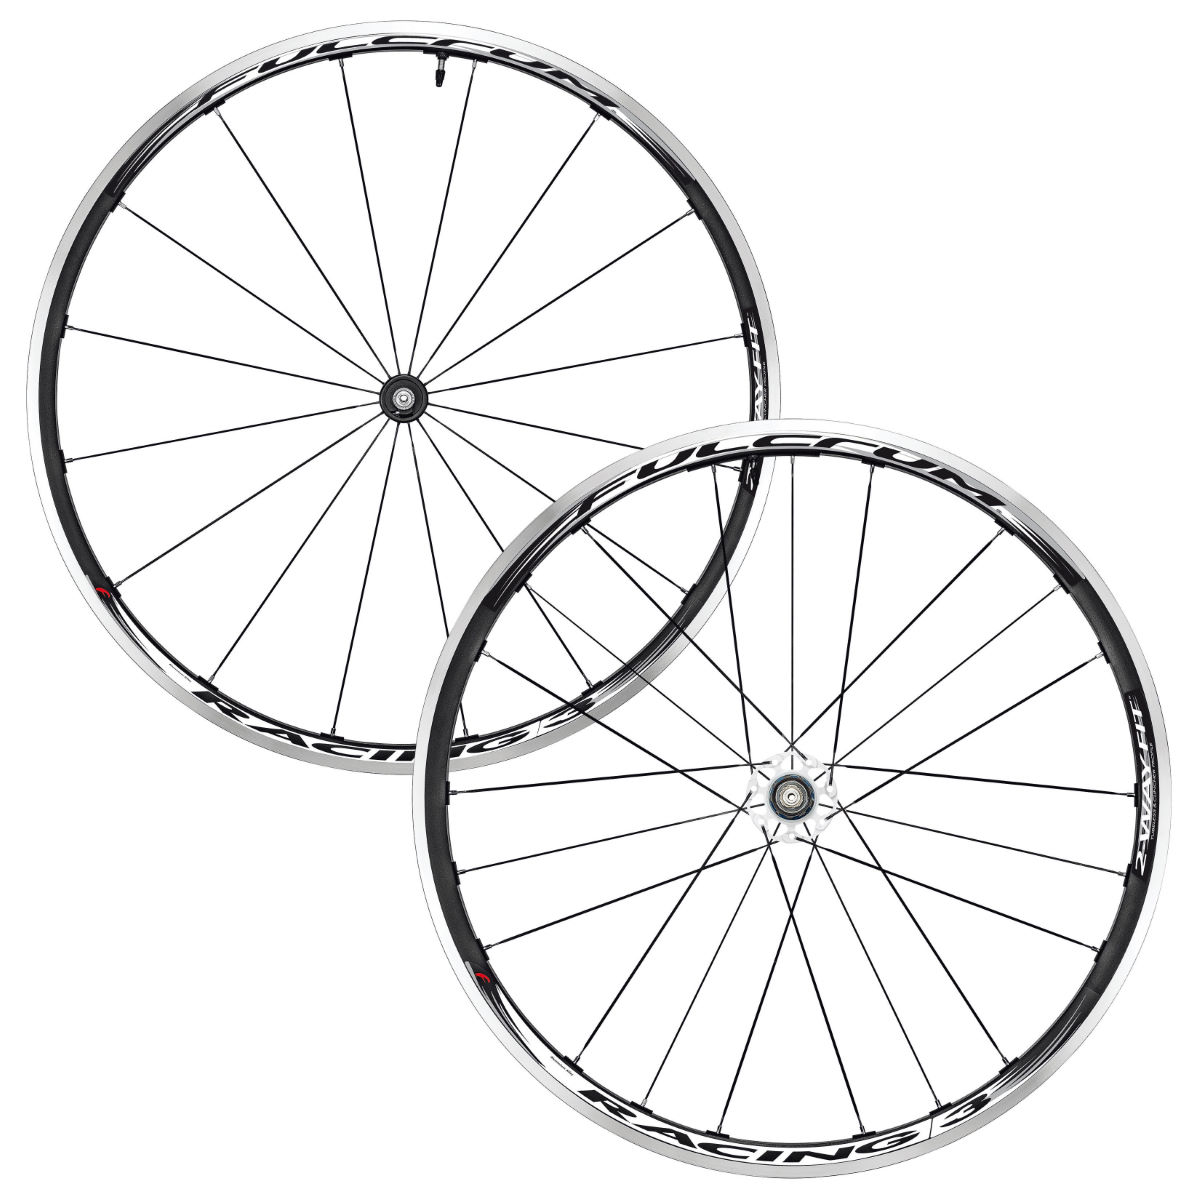 Paire de roues Fulcrum Racing 3 2-Way Fit Tubeless - Noir/Blanc